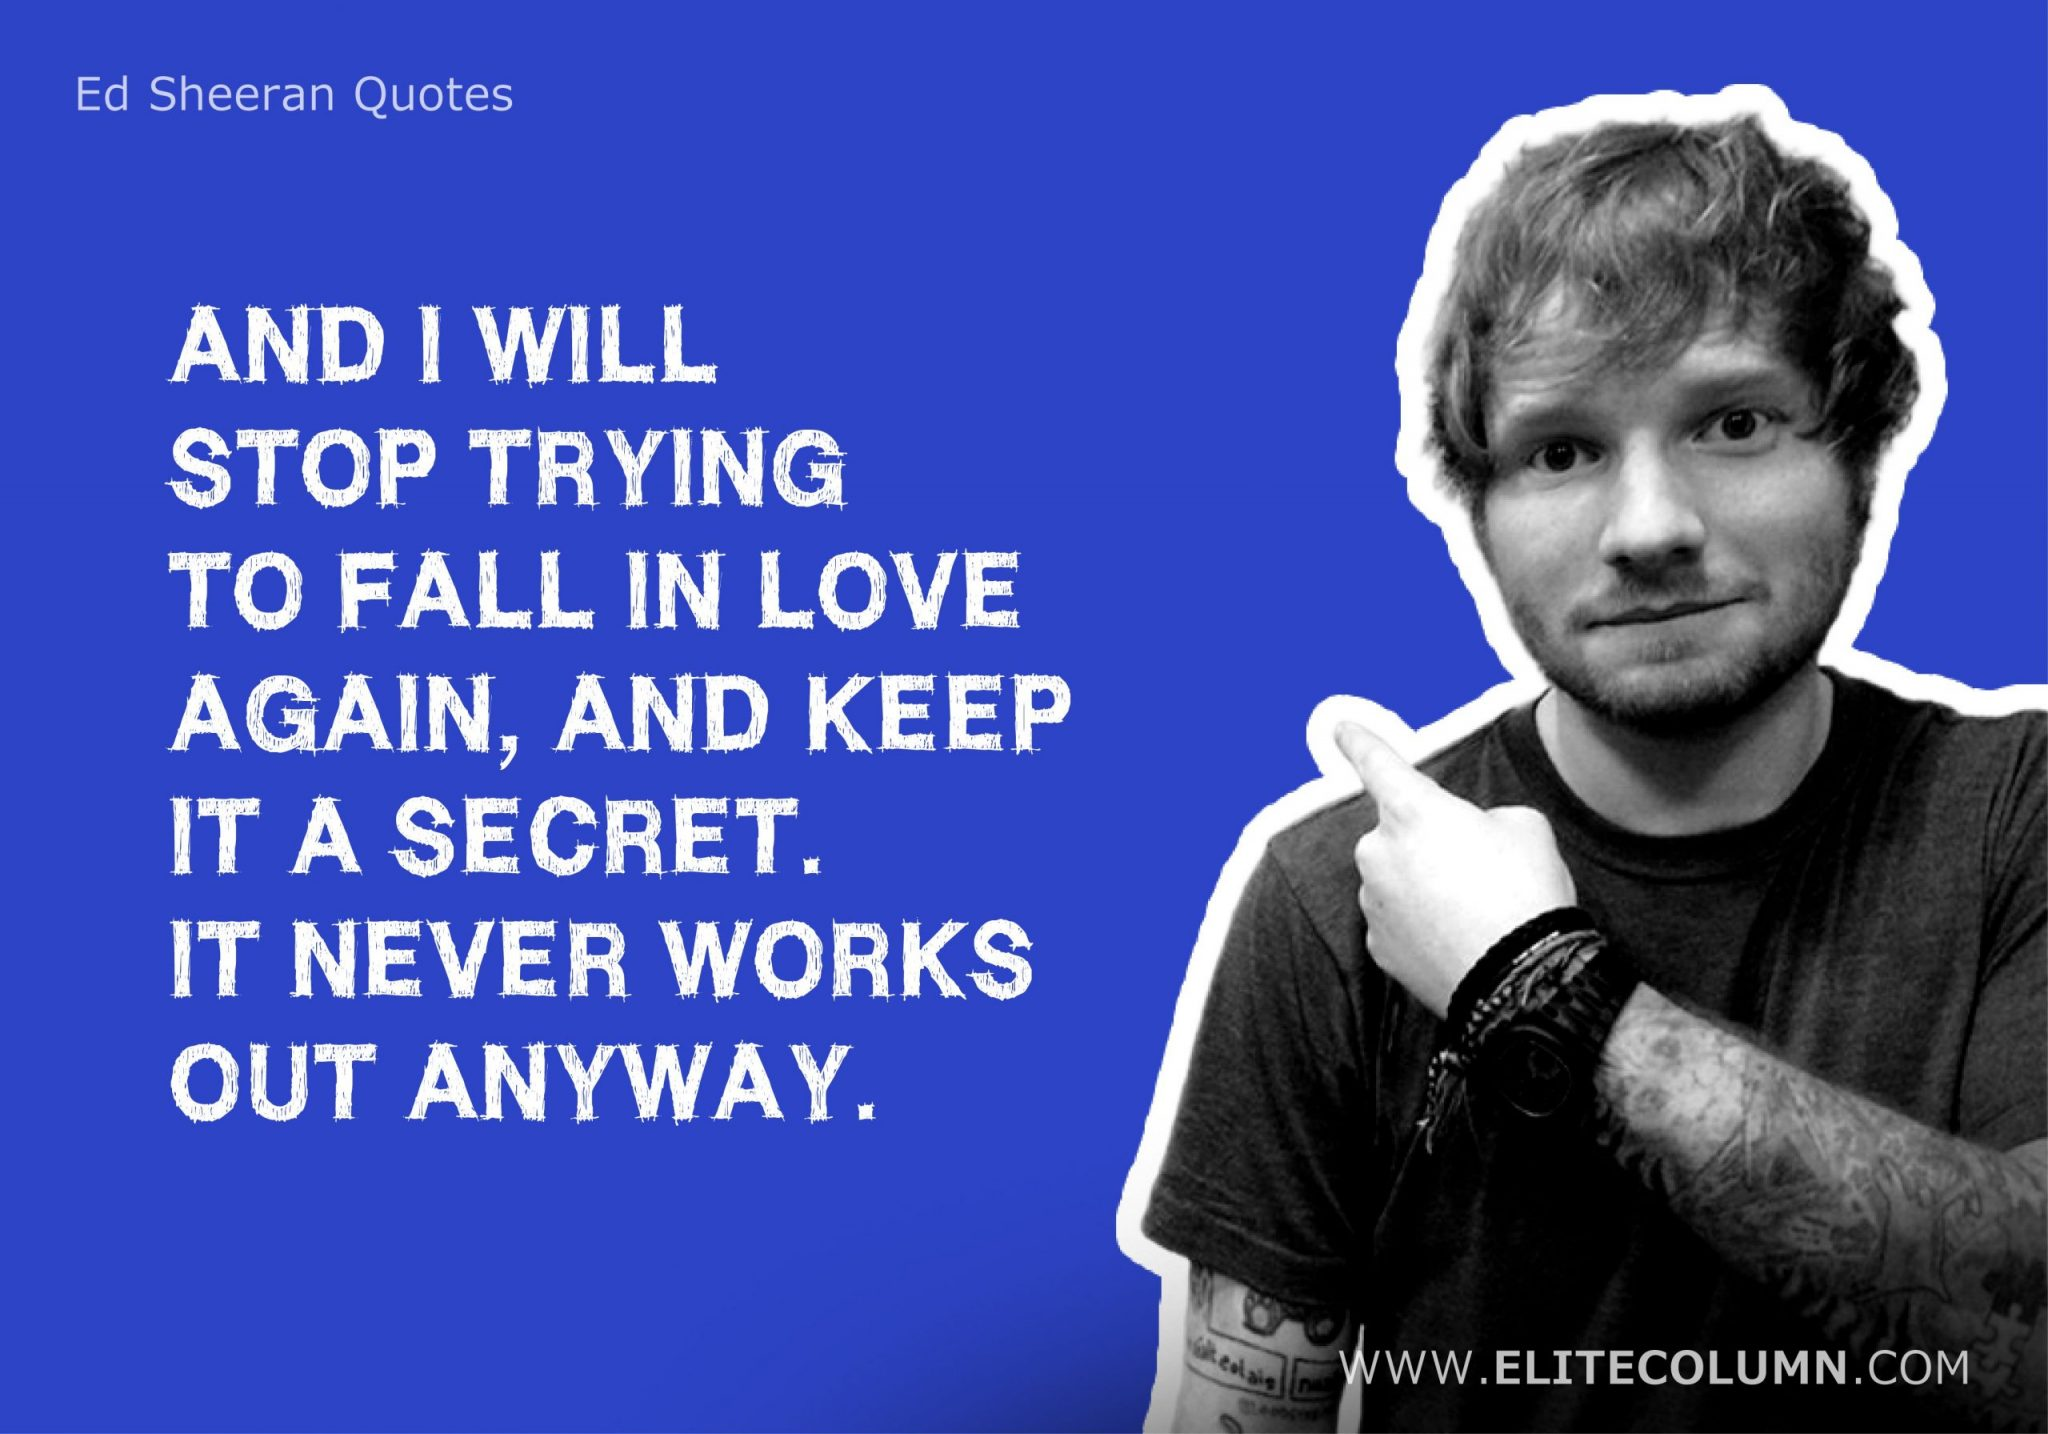 Ed Sheeran Quotes (19)